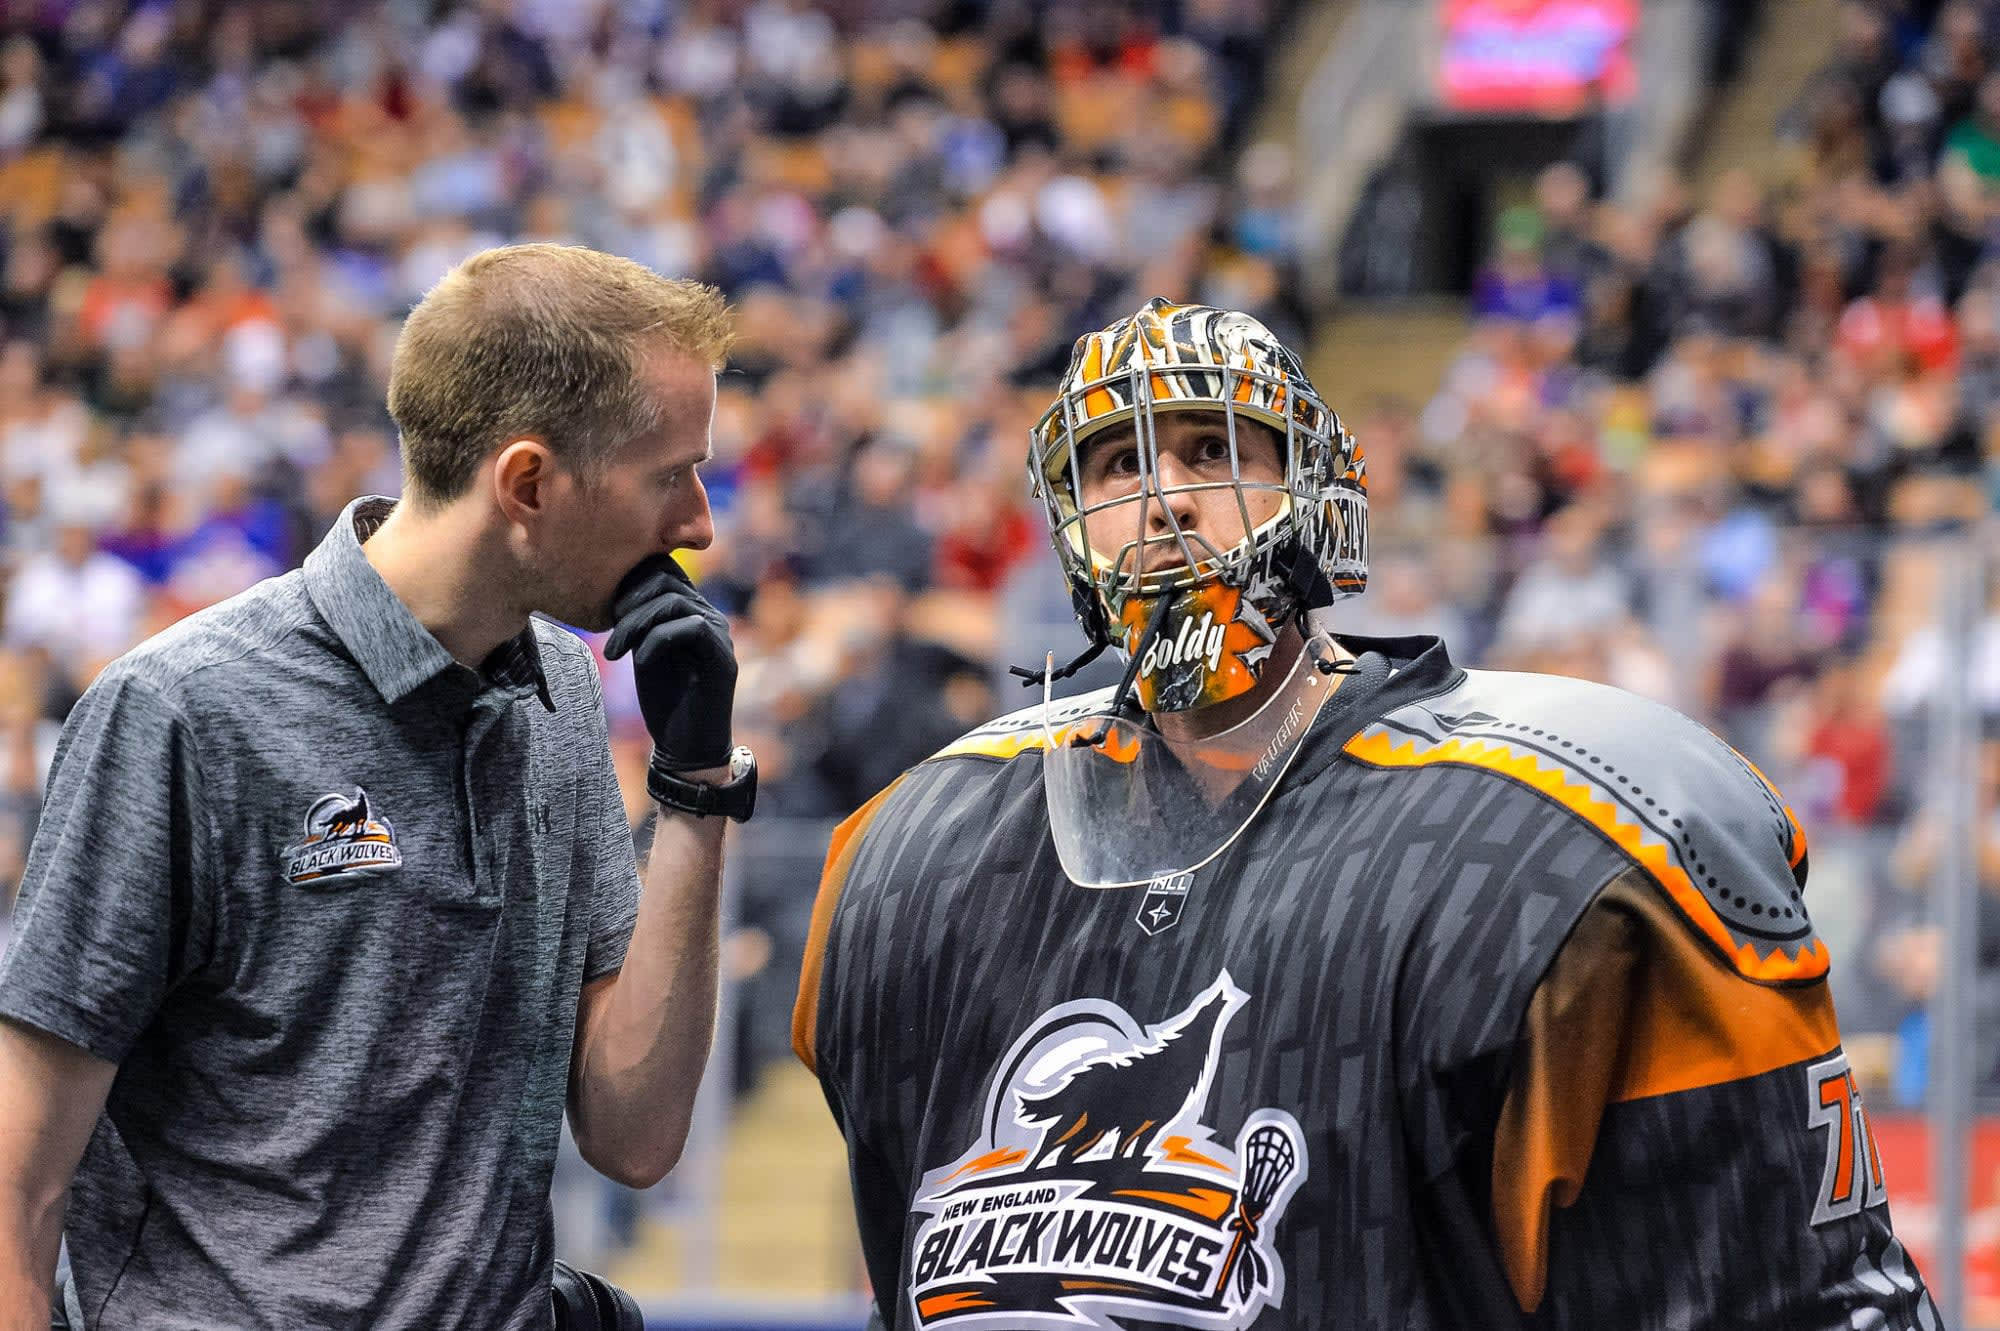 TORONTO, ON - MAR 11, 2018: National Lacrosse League game between the Toronto Rock and the New England Blackwolves, (Photo by Ryan McCullough / NLL) Aaron Bold goaltender